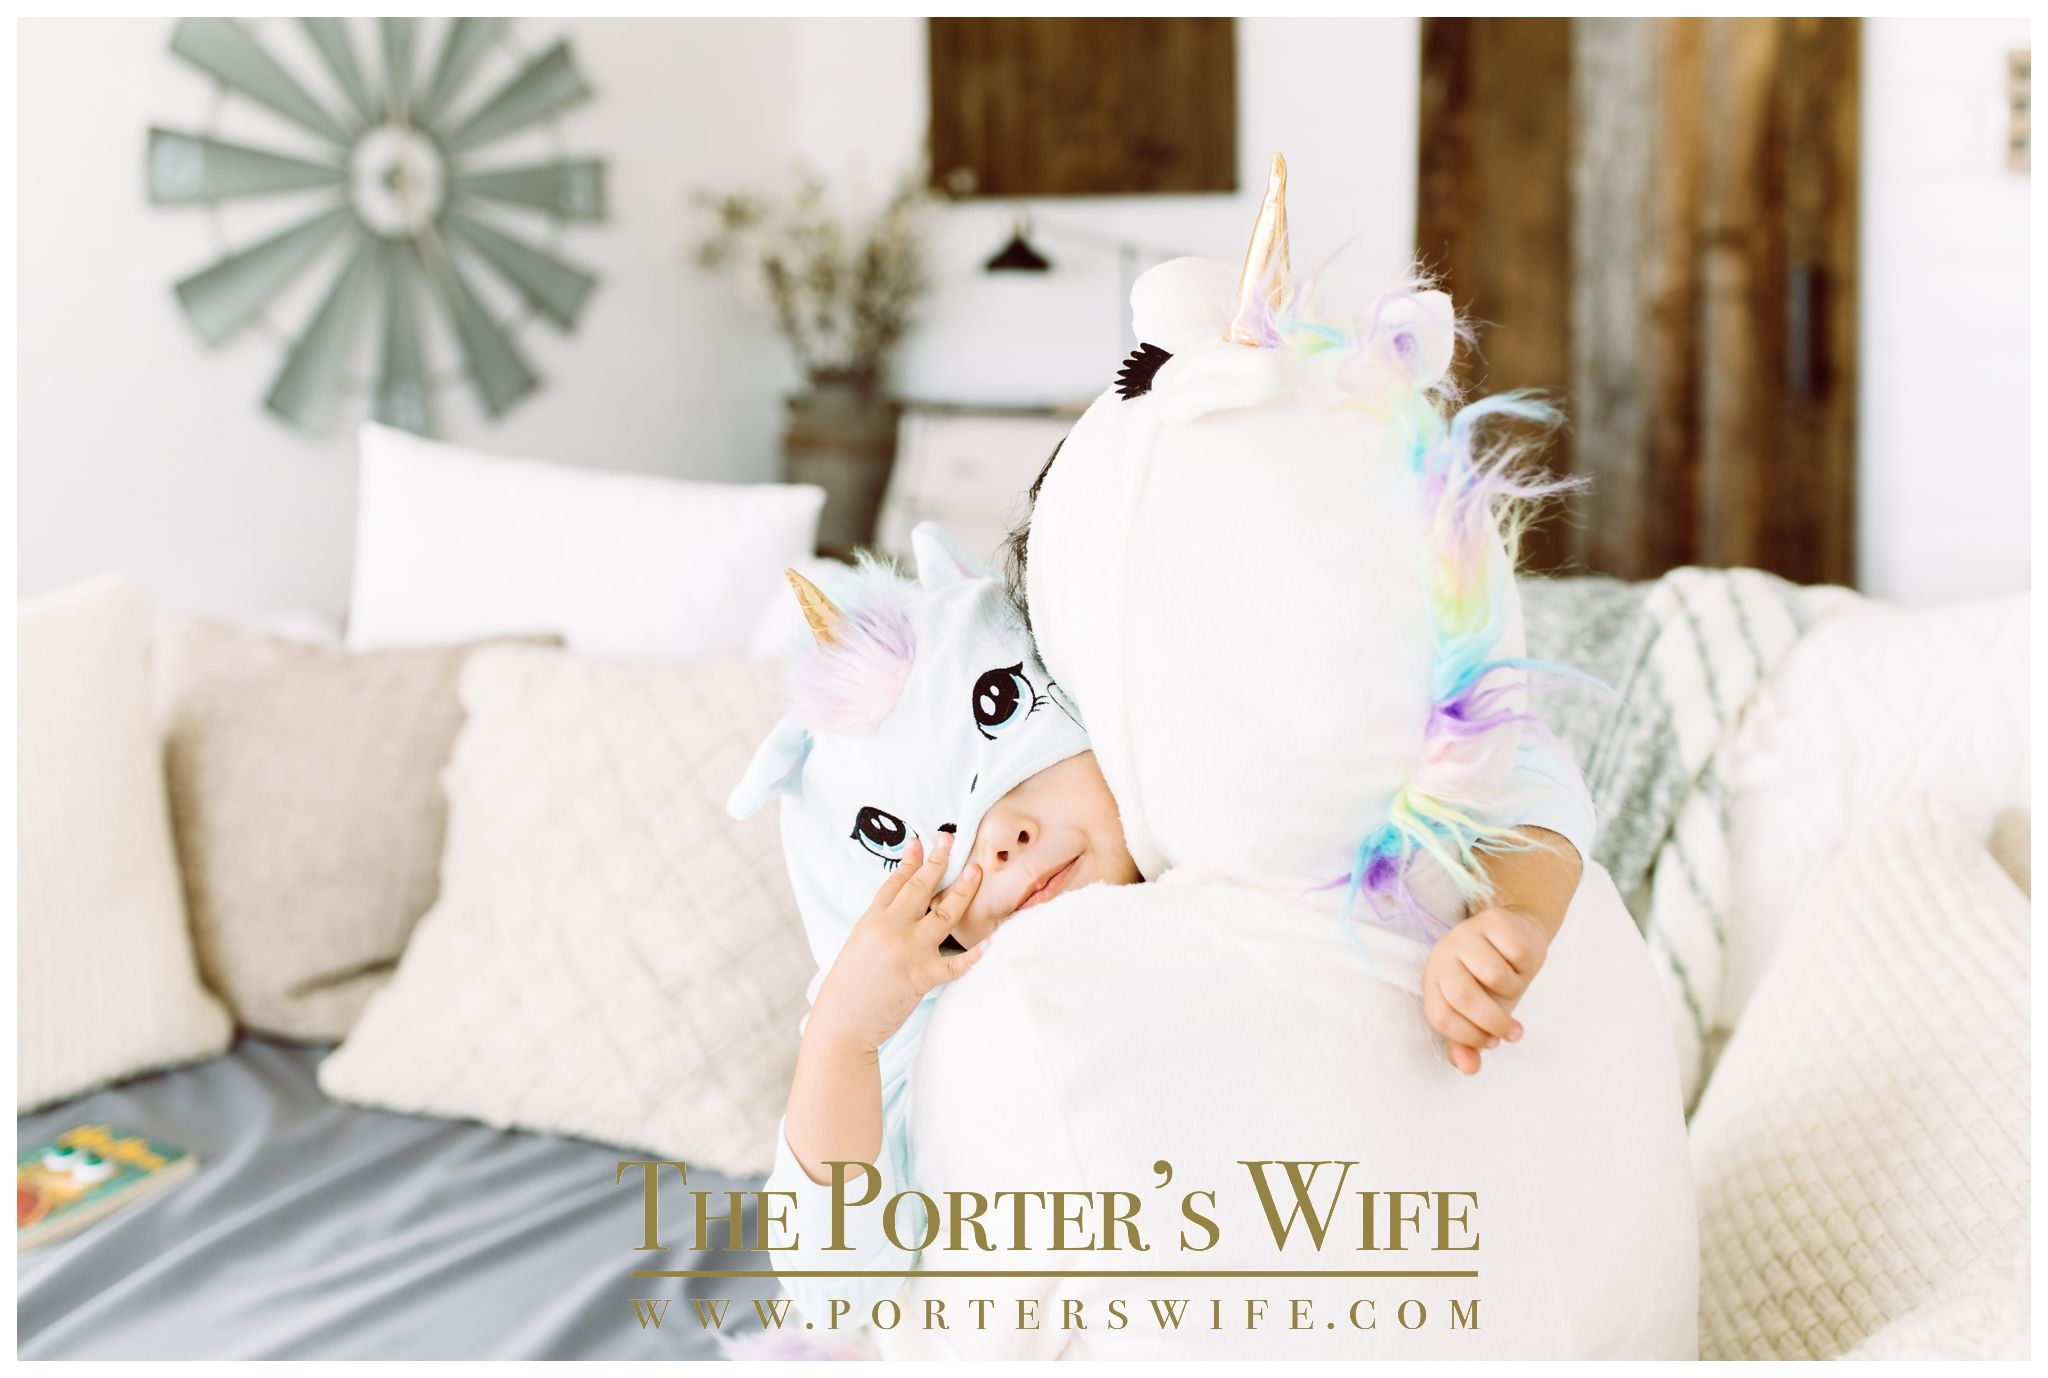 www.theporterswife.com  IG: porters_wife_photography FB: The Porter's Wife, Child Photographer